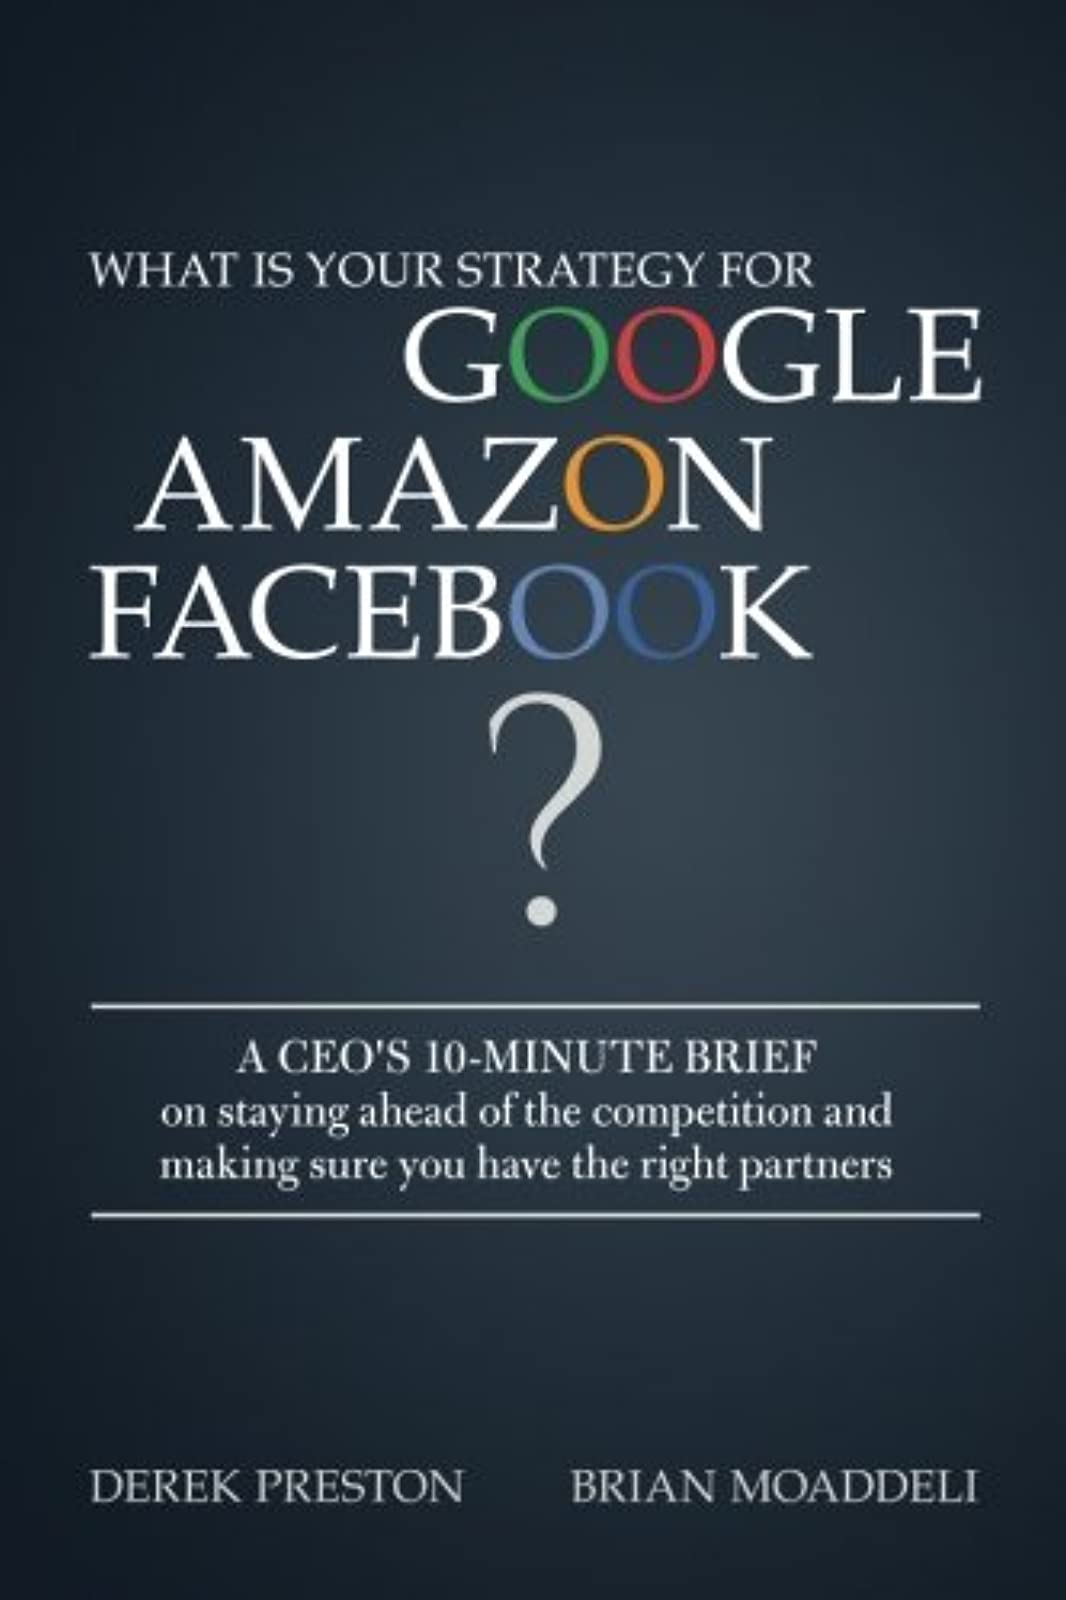 What Is Your Strategy For Google Amazon Facebook?: A Ceo's 10-MINUTE